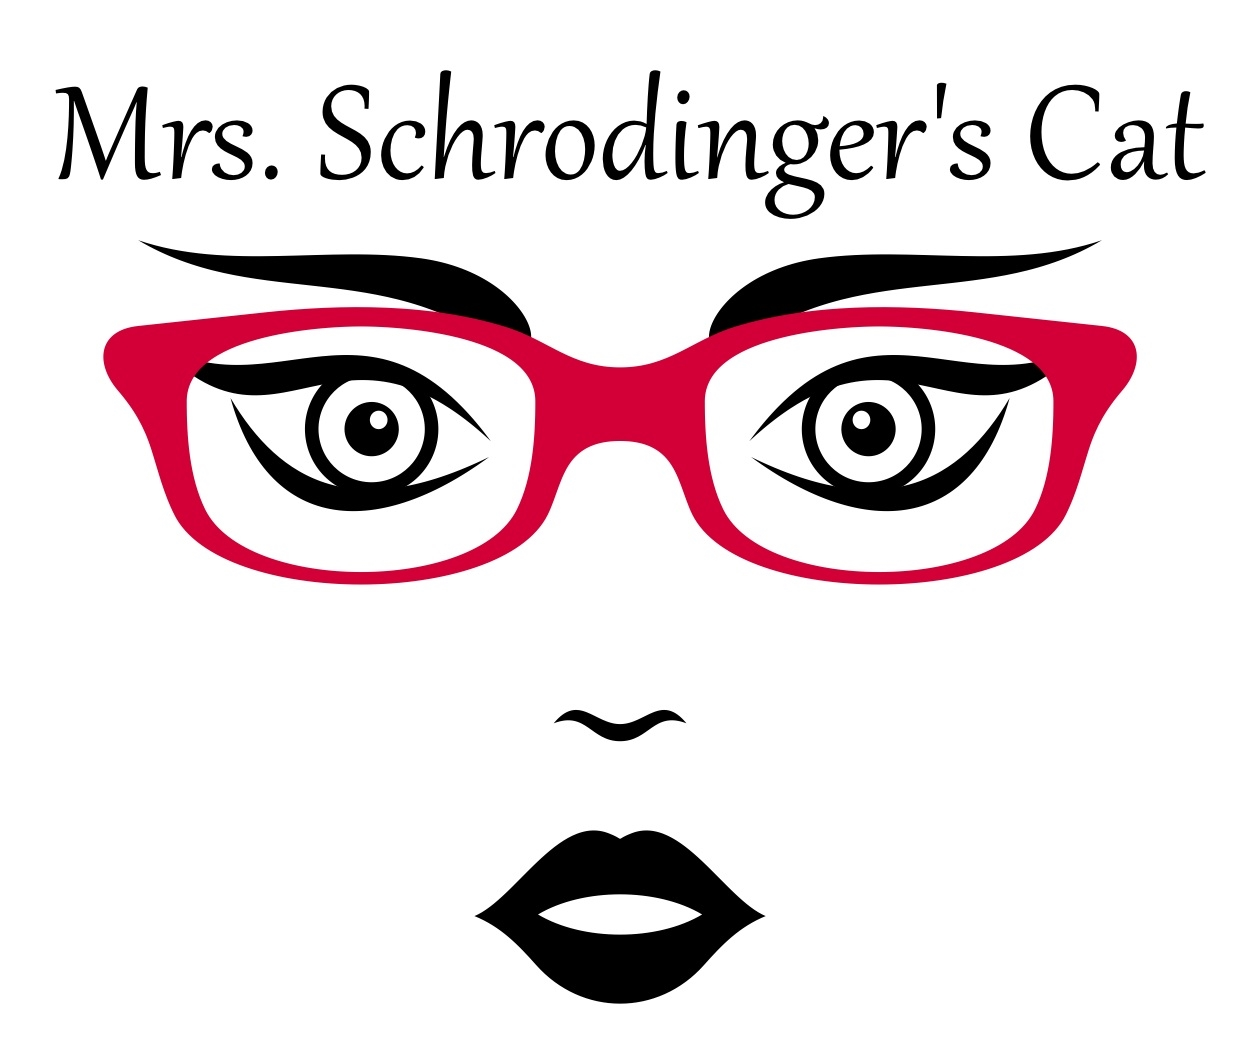 Mrs. Schrodinger's Cat